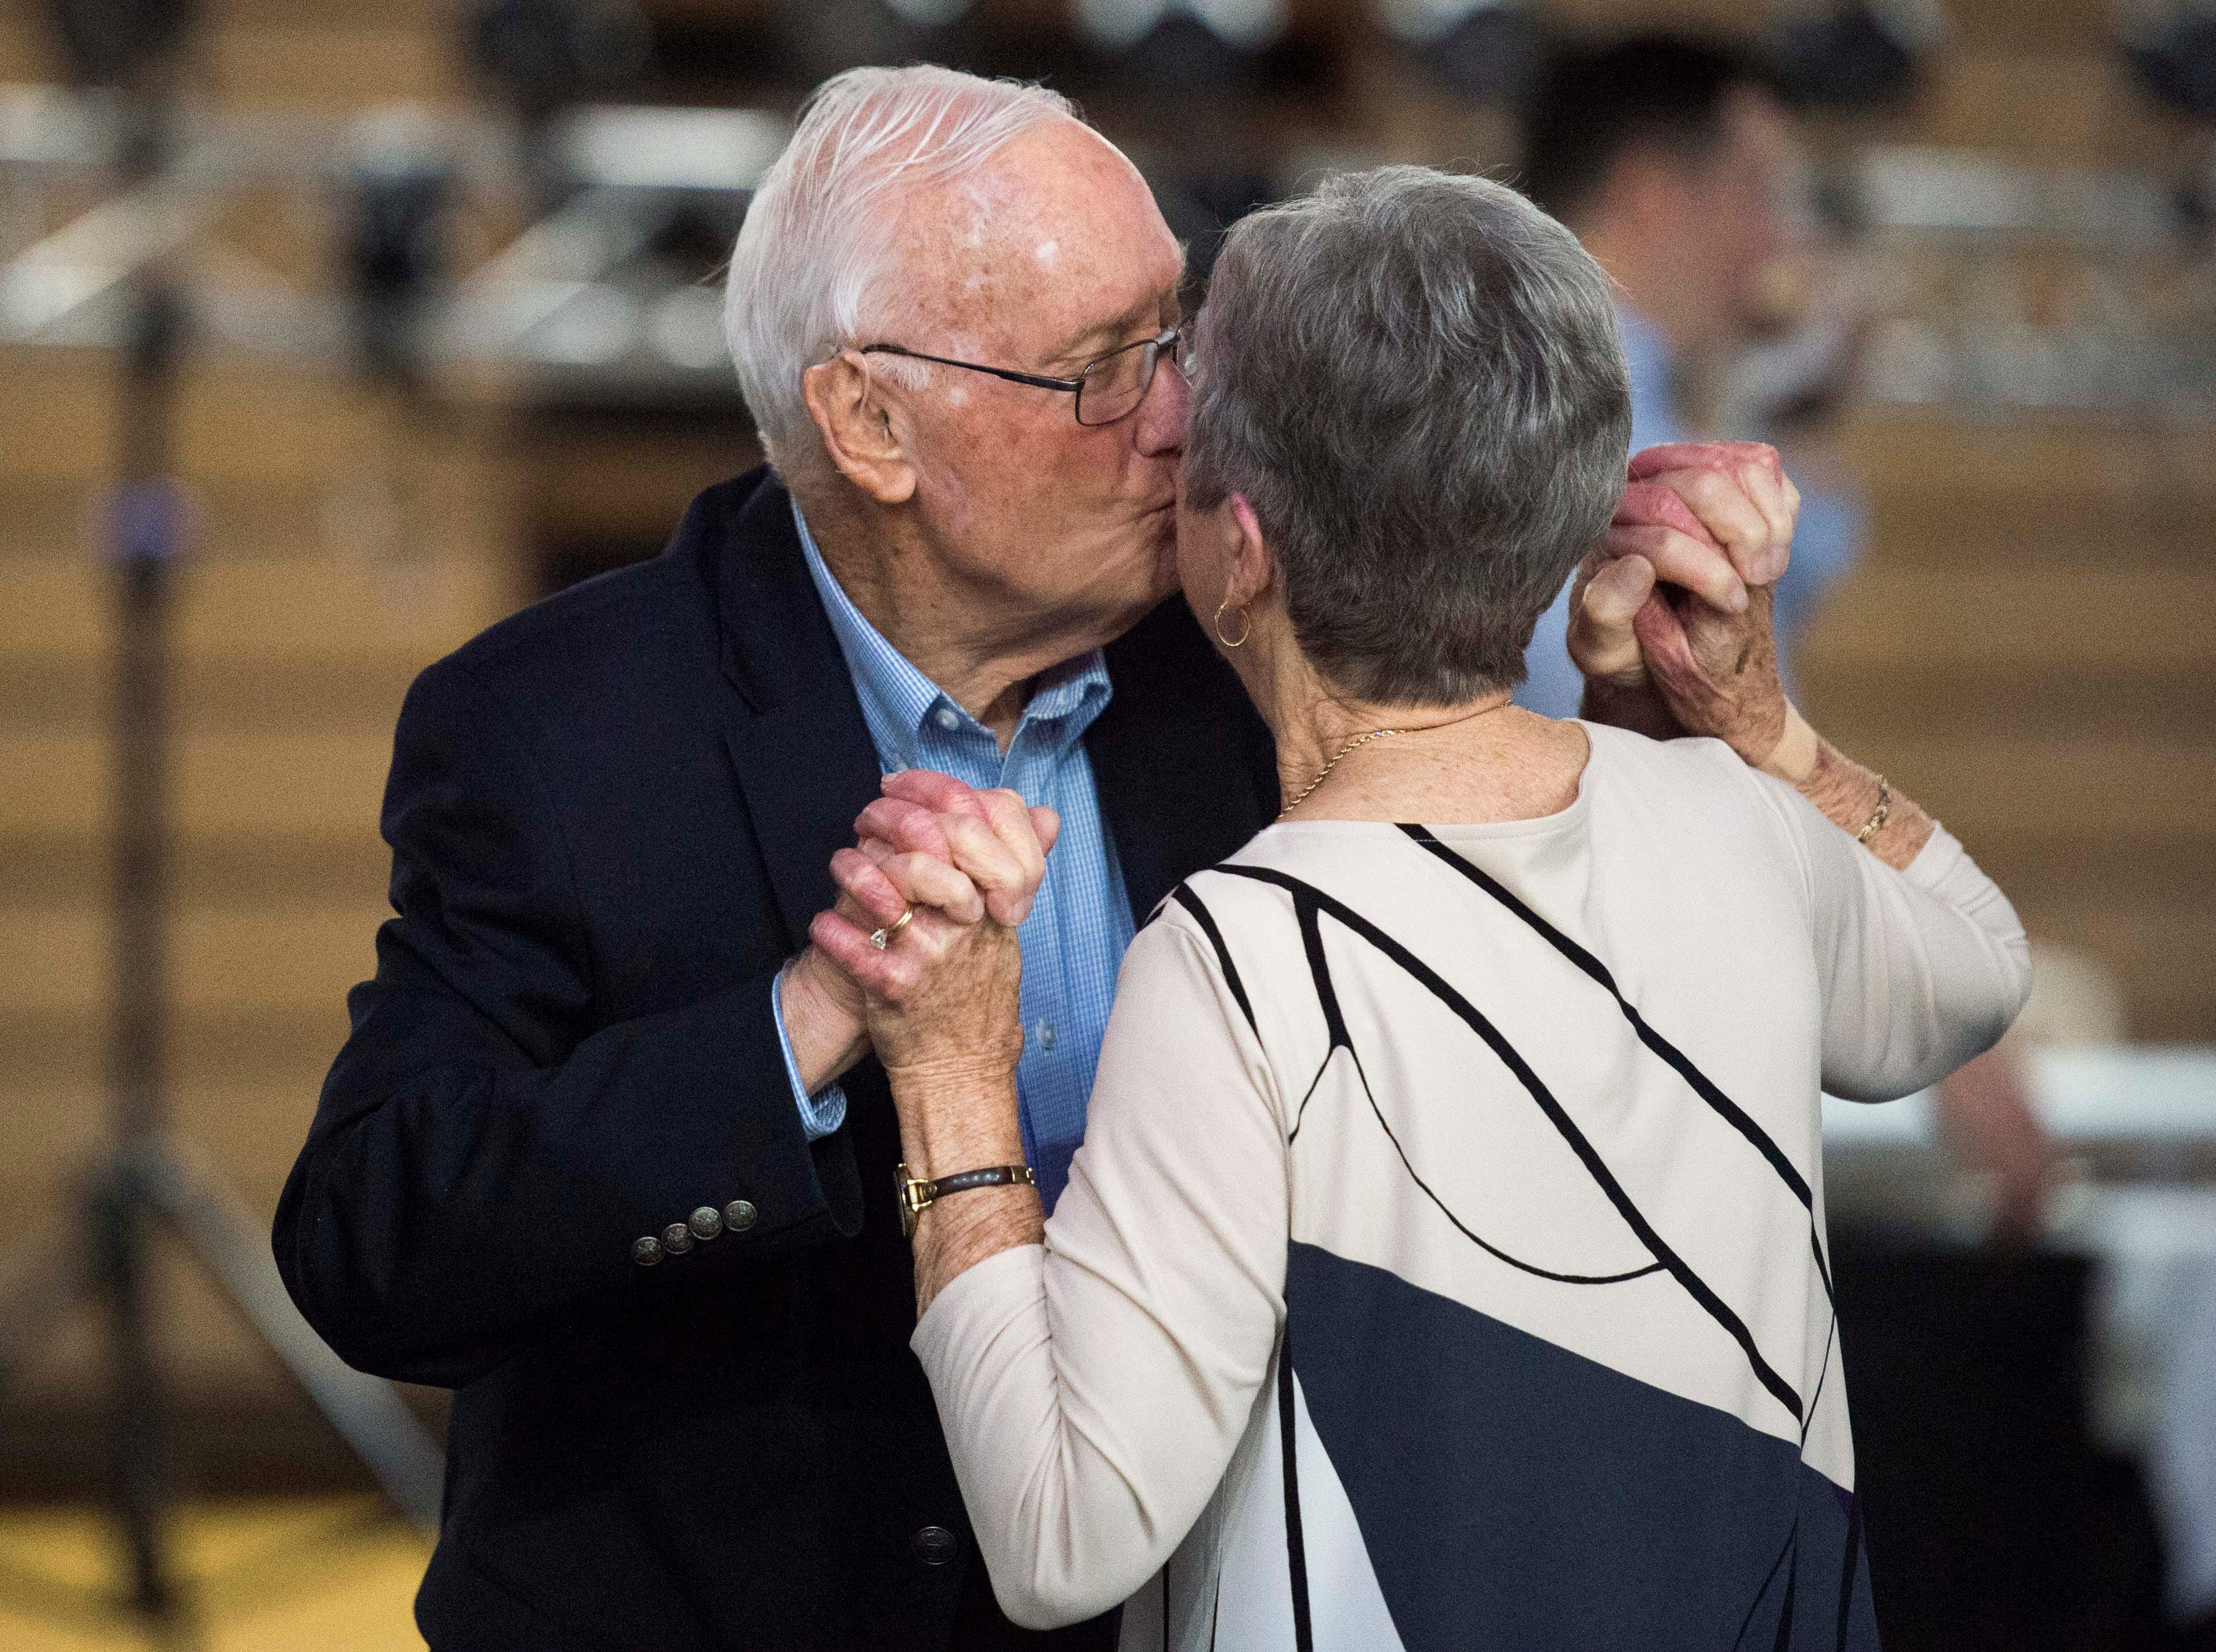 Harry Bennett gives his wife Sui a kiss while on the dance floor during the 2019 Senior Citizen Prom at Henderson County High School Monday, April 15, 2019.